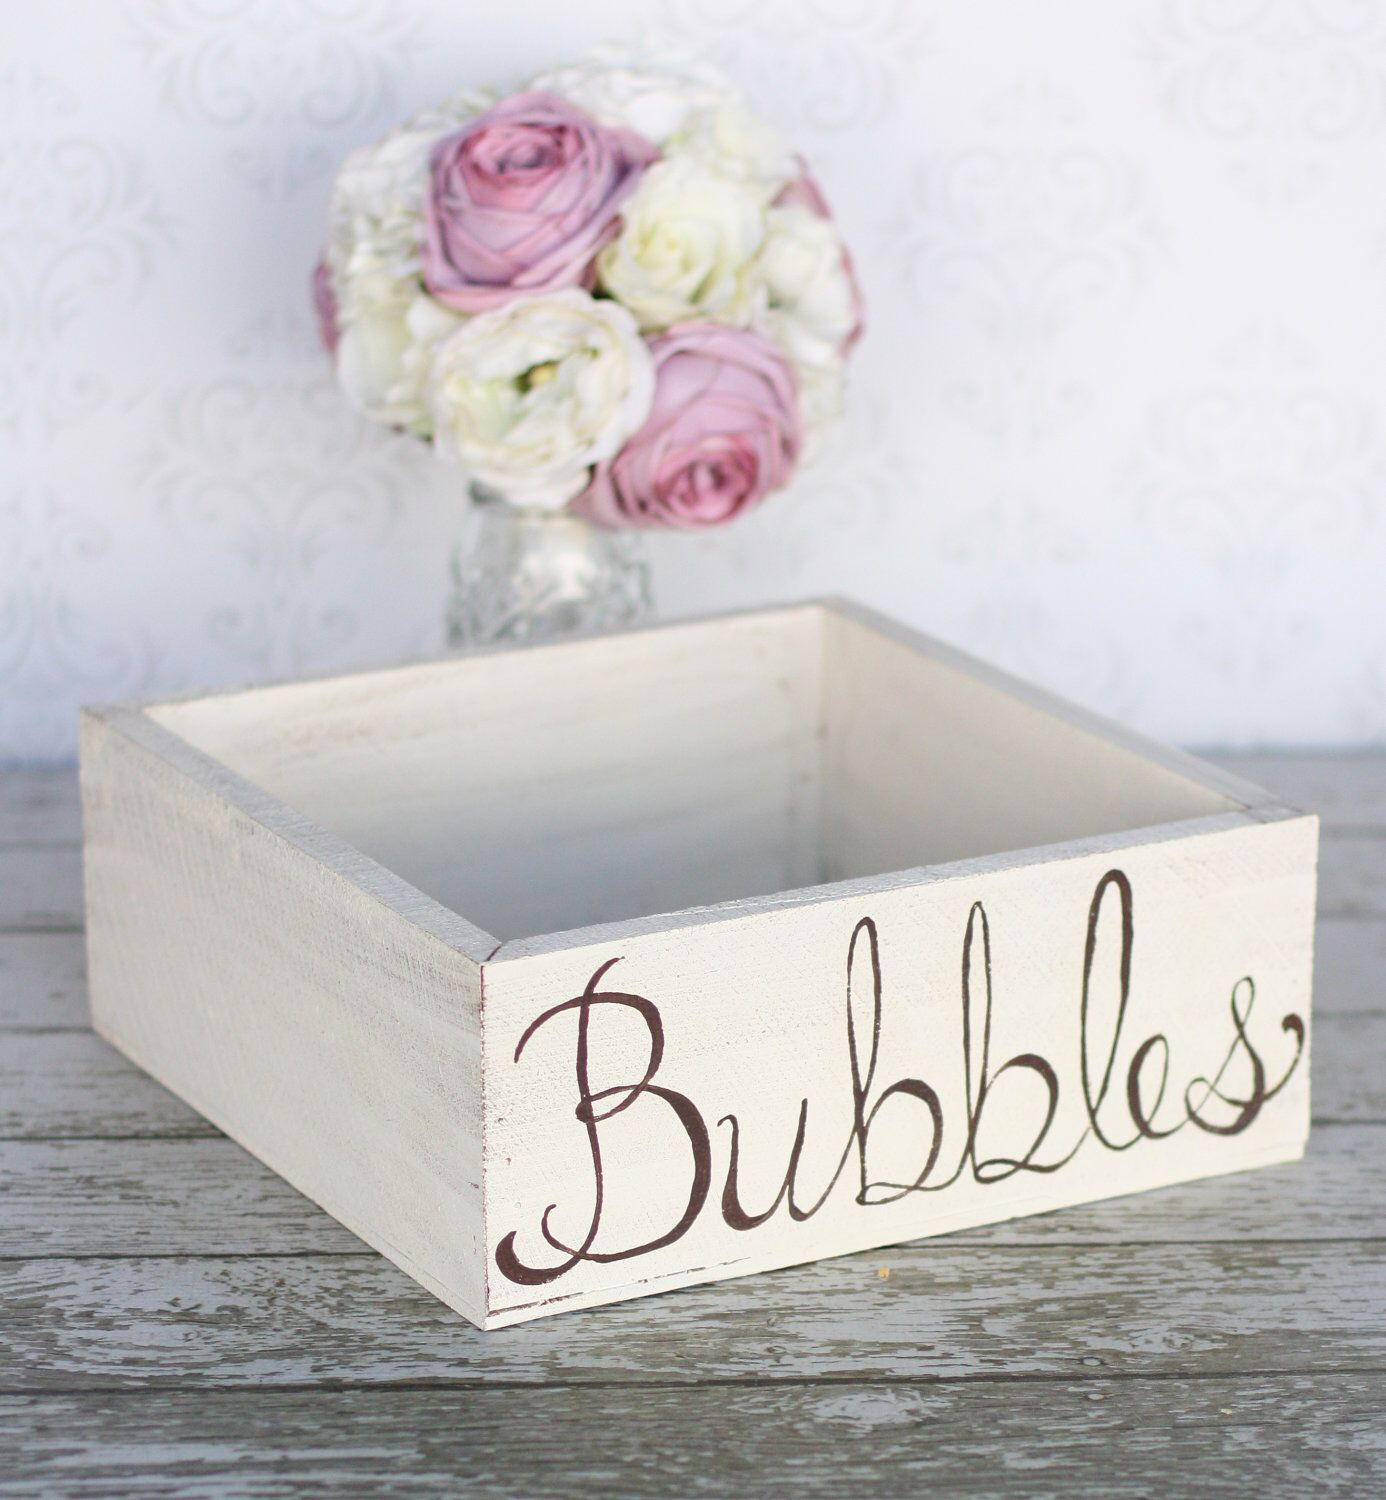 Rustic Wedding Box or Tray For Bubbles Favors Cards Program YOU PICK ...